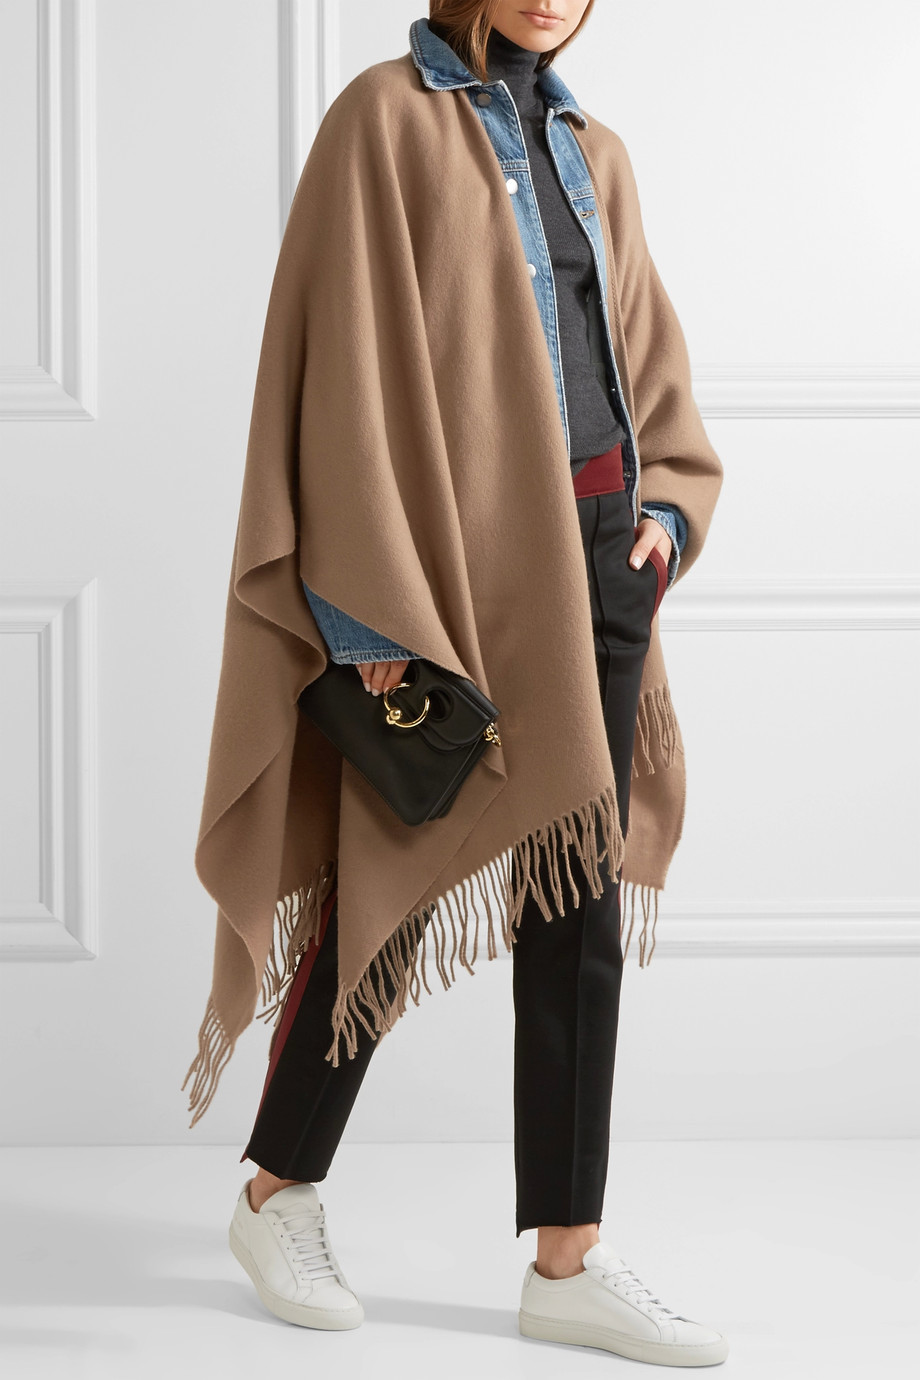 Acne Studios Fringed wool wrap $360